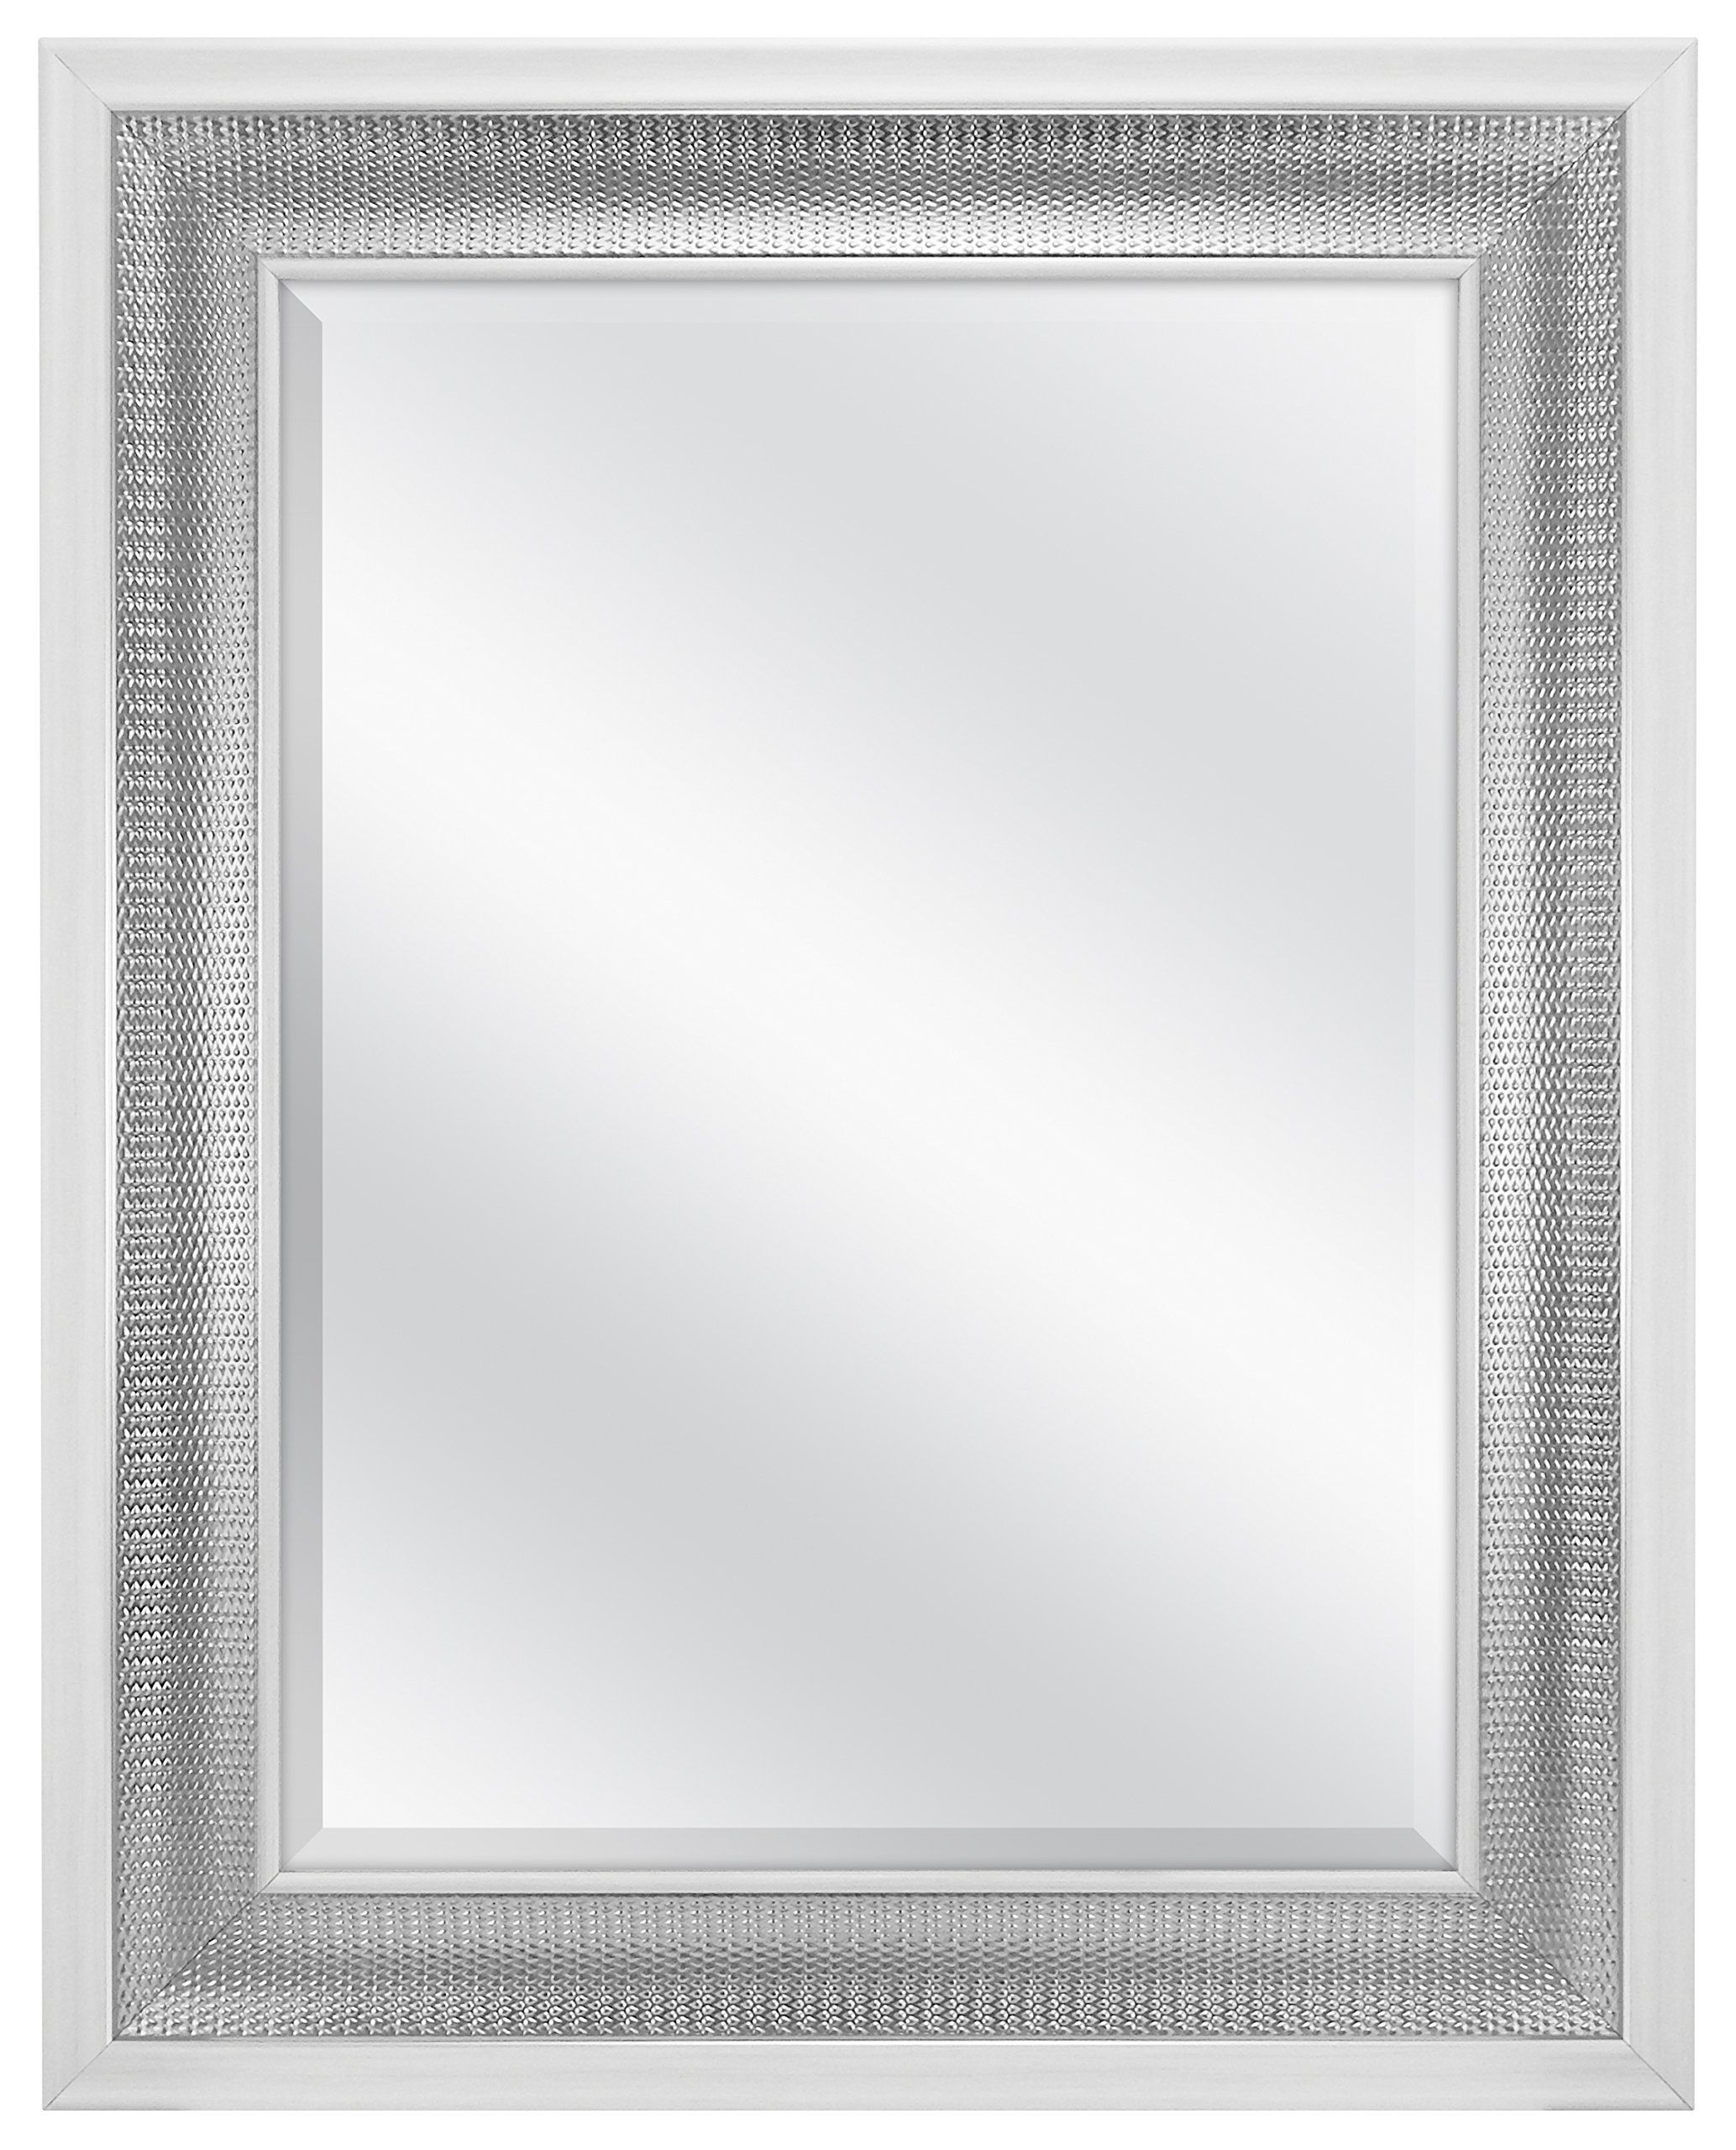 Mcs 18X24 Inch Beveled Wall Mirror White & Woven, Silver Throughout Farmhouse Woodgrain And Leaf Accent Wall Mirrors (View 12 of 20)